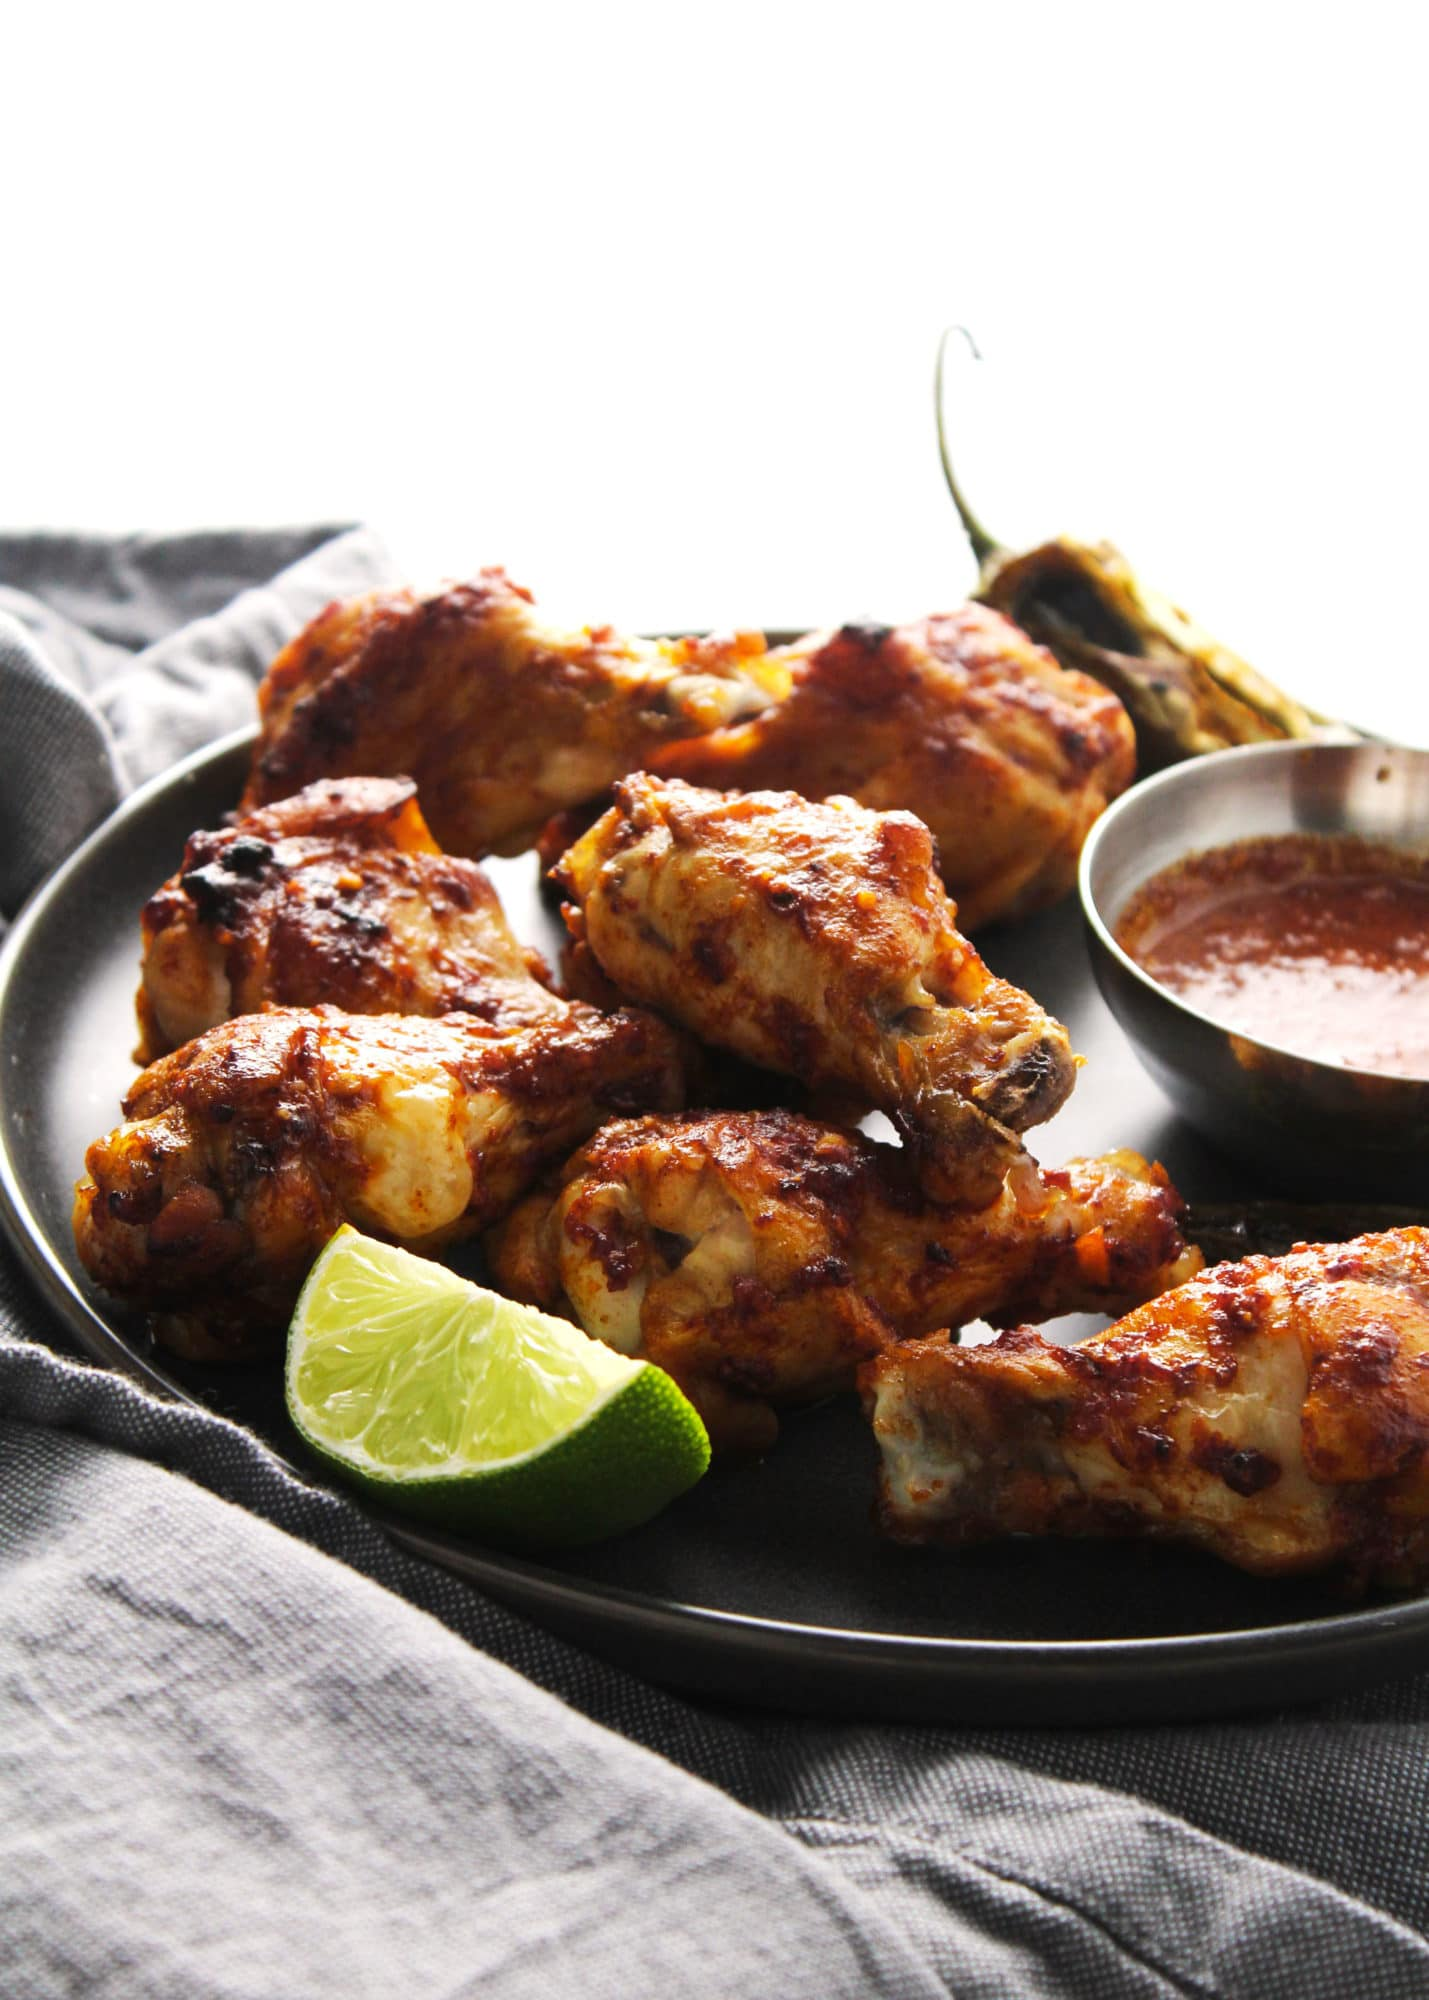 Chili-Lime-Baked-Wings-5